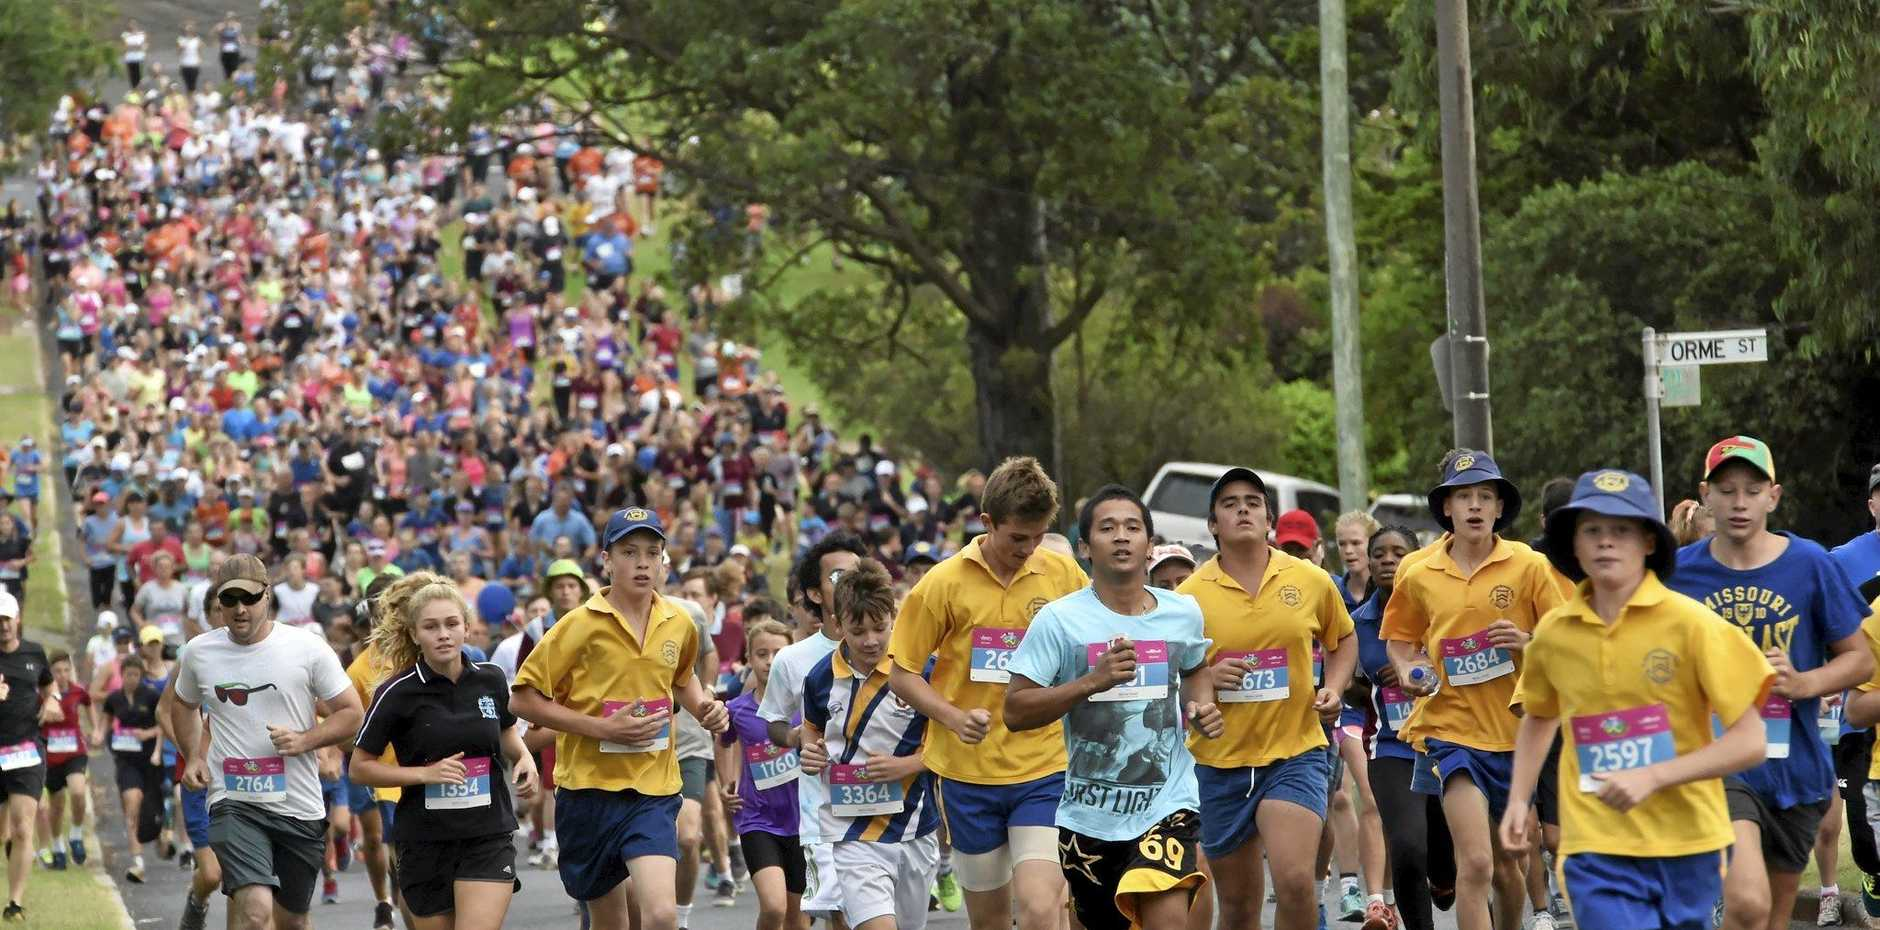 Runners taking part in the 4km funrun coming down Leslie Street.